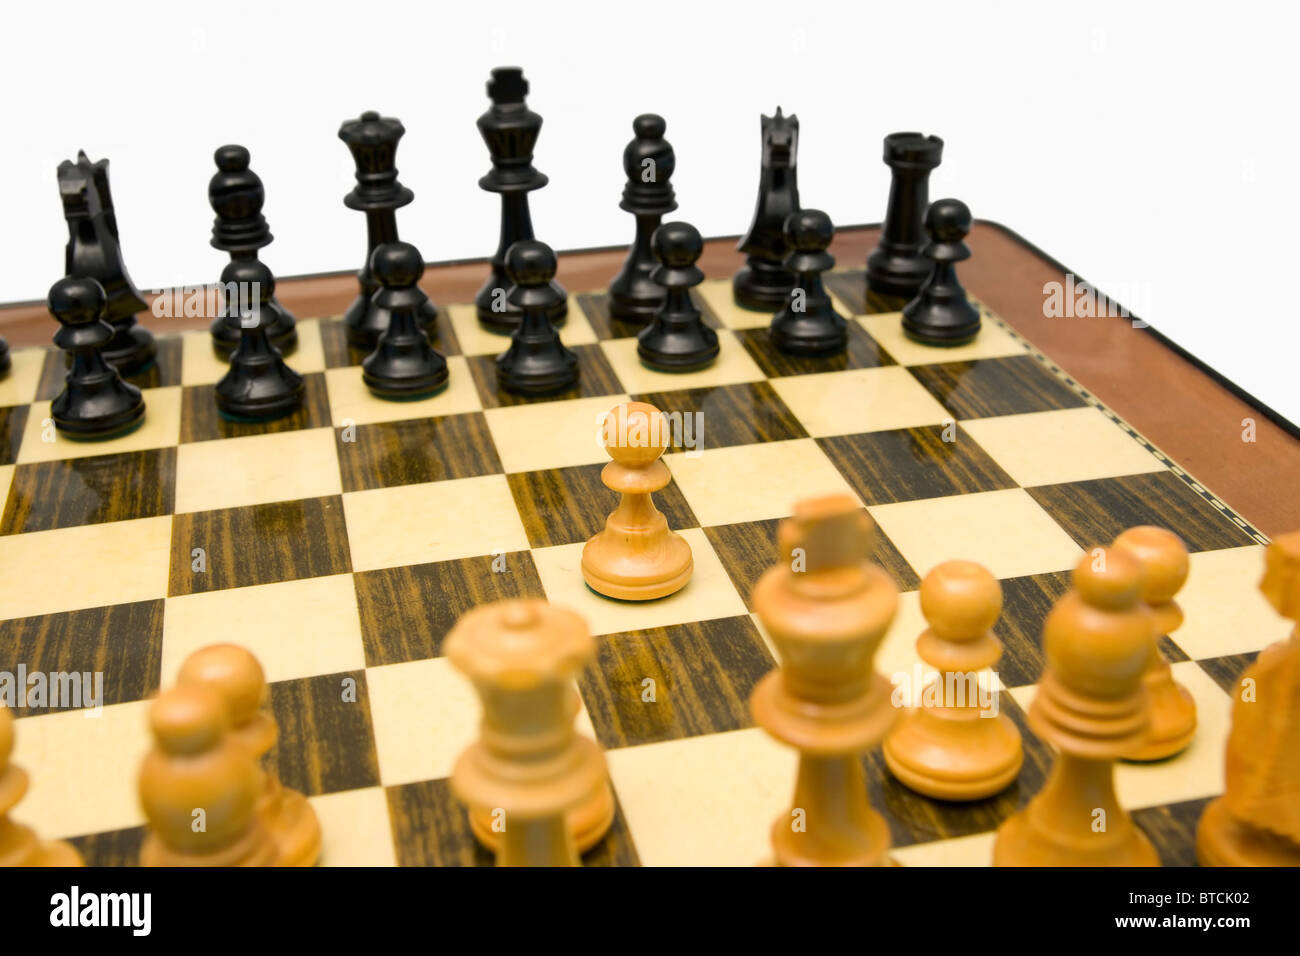 Starting chess match with kings pawn opening - Stock Image